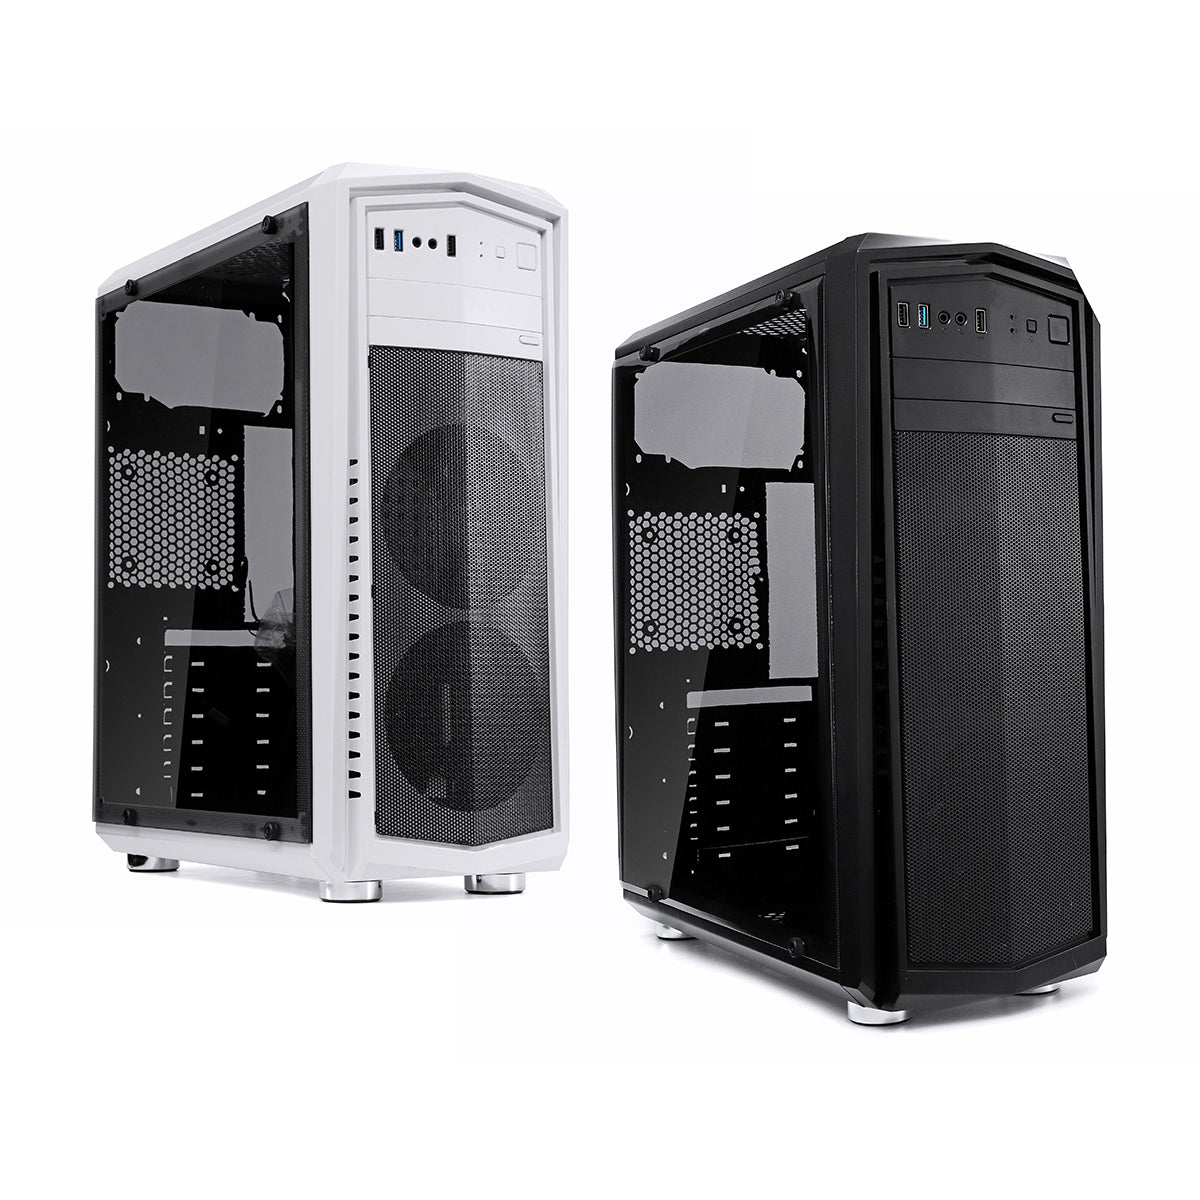 cozyrex,Transparent Side Panel ATX PC Case Desktop Computer Case for ATX Micro-ATX Mini-ITX Motherboard,CozyRex,